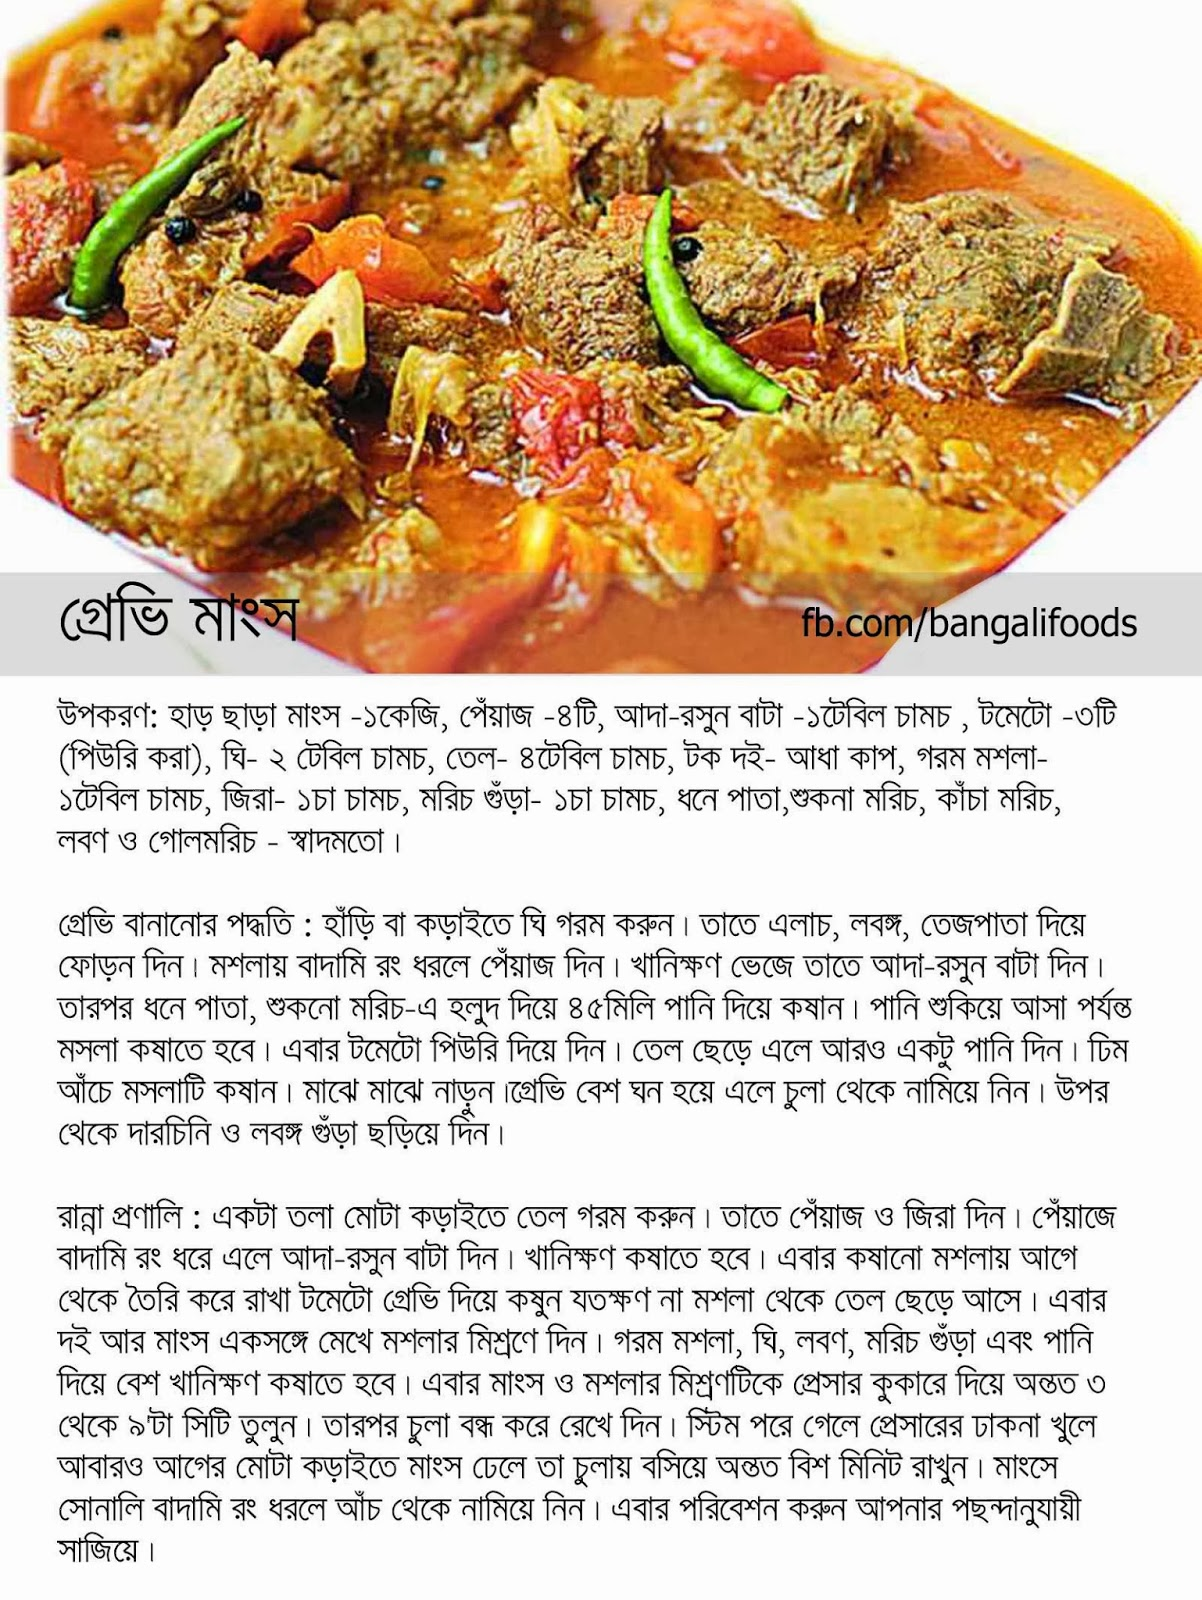 Bangali foods beef recipe for the eid ul adha 2013 beef recipe for the eid ul adha 2013 in bangla forumfinder Images